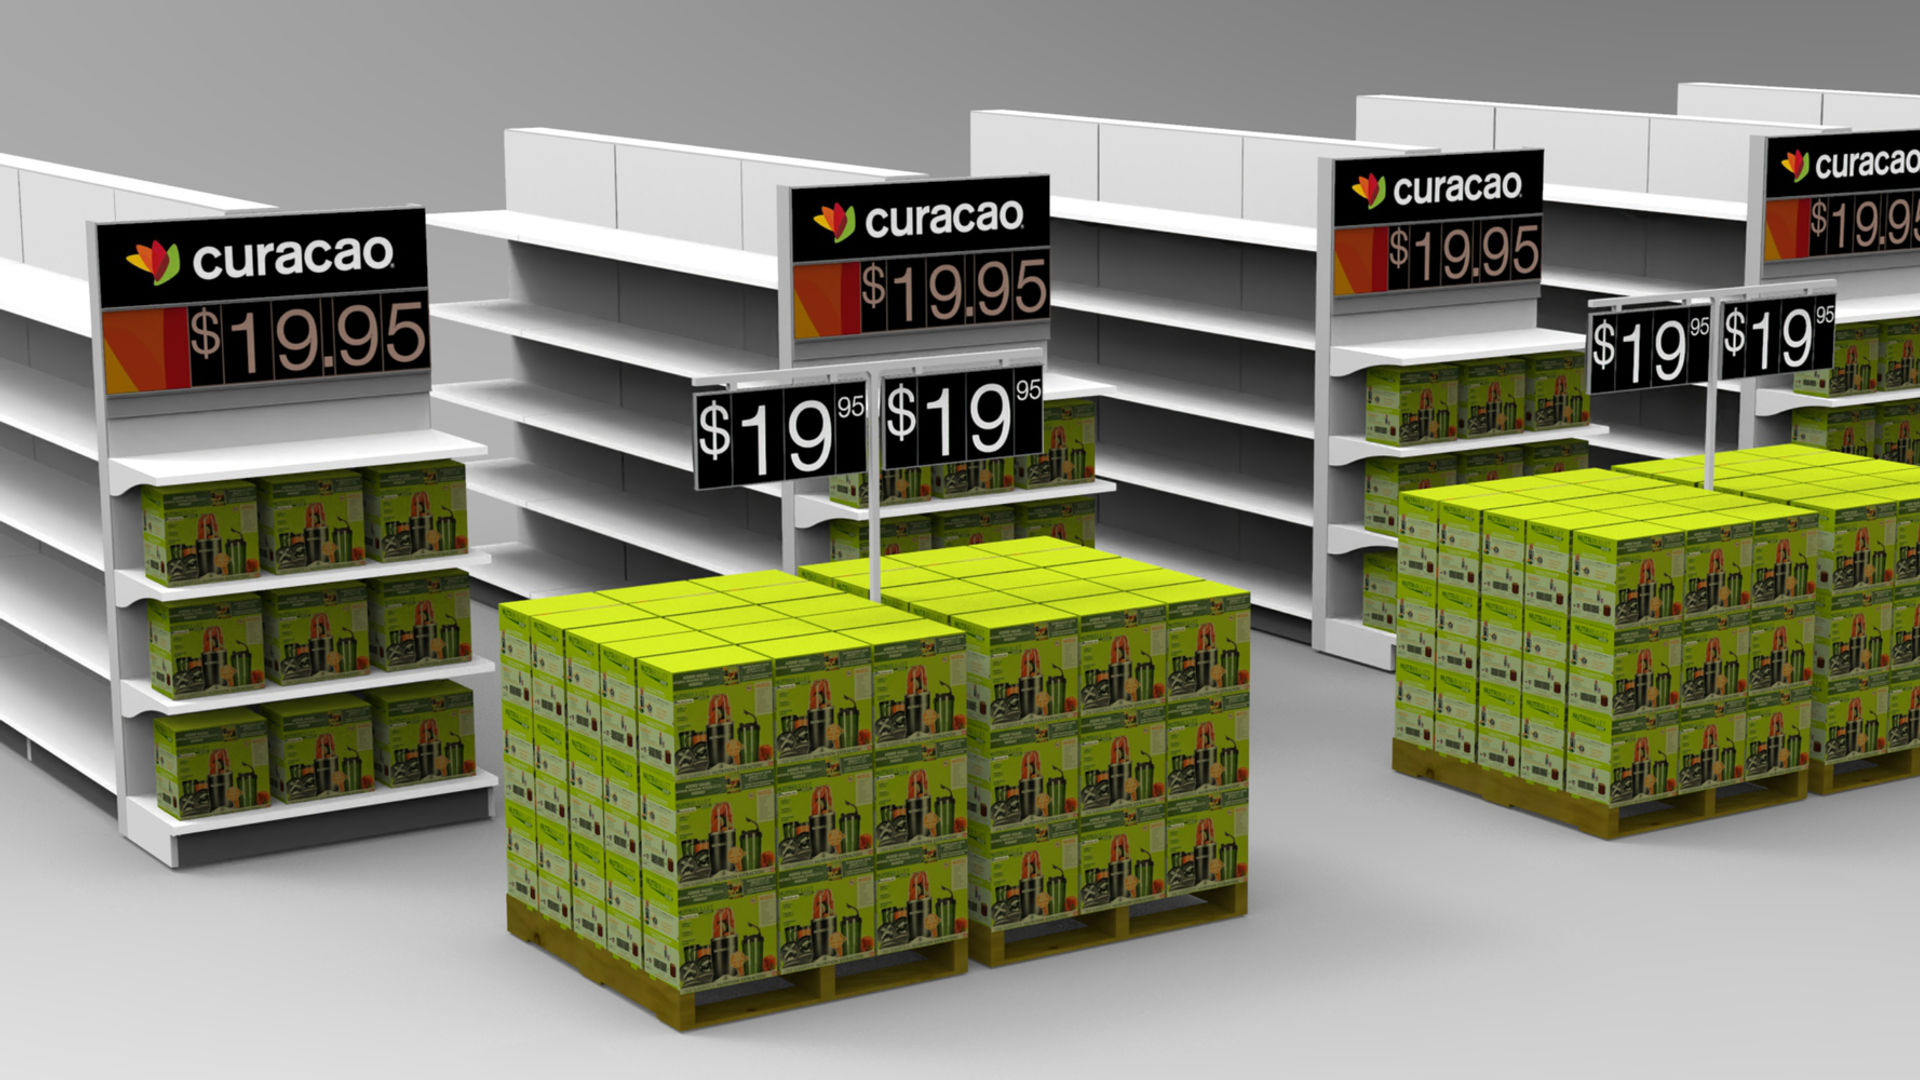 Curacao Price Signs